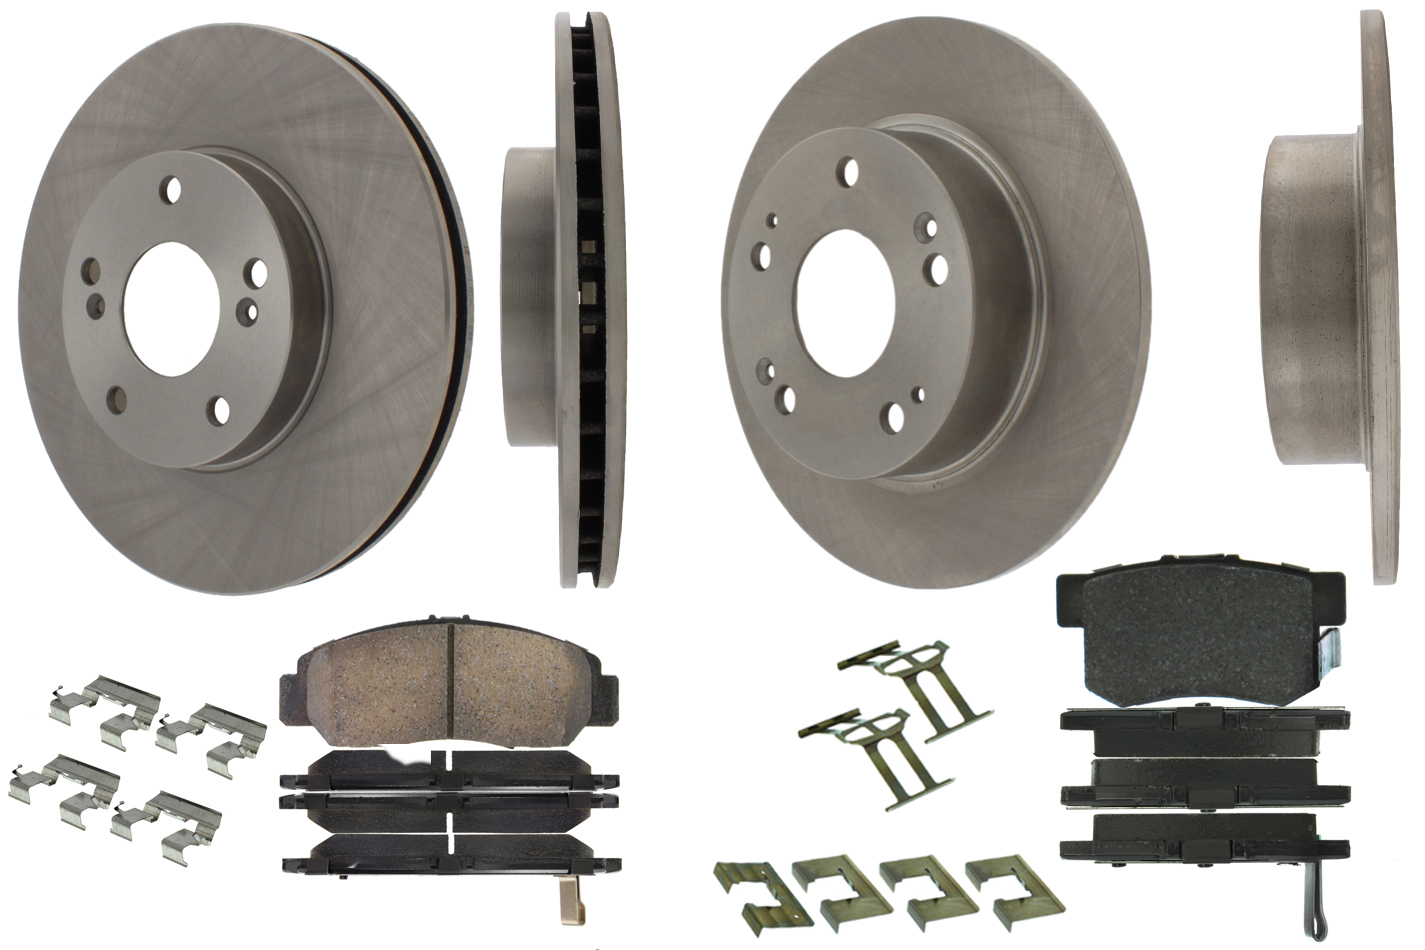 905.40034 Centric Brake Parts Select Axle Pack 4 Wheel